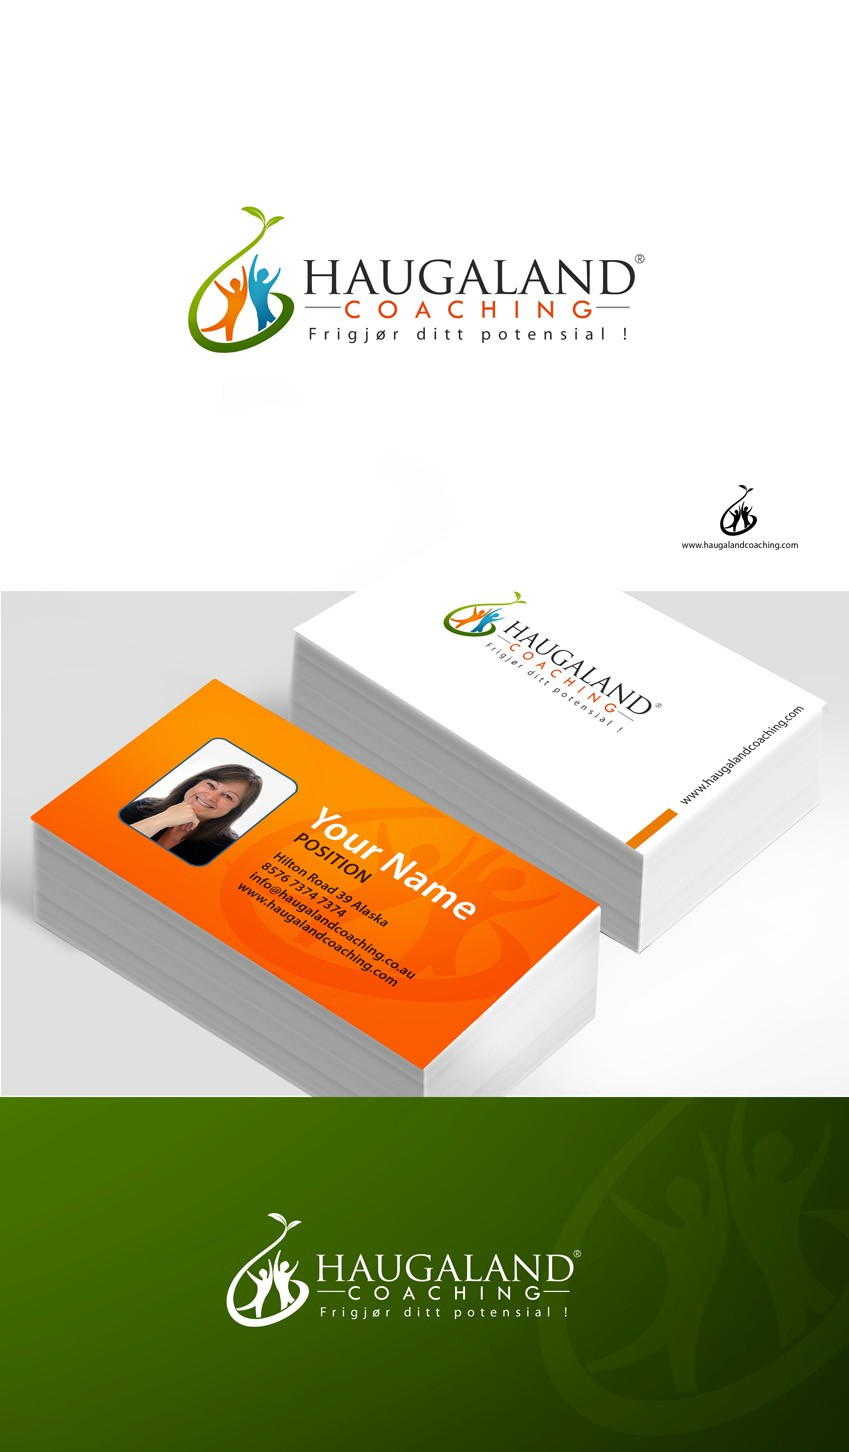 logo and business card for Haugaland Coaching